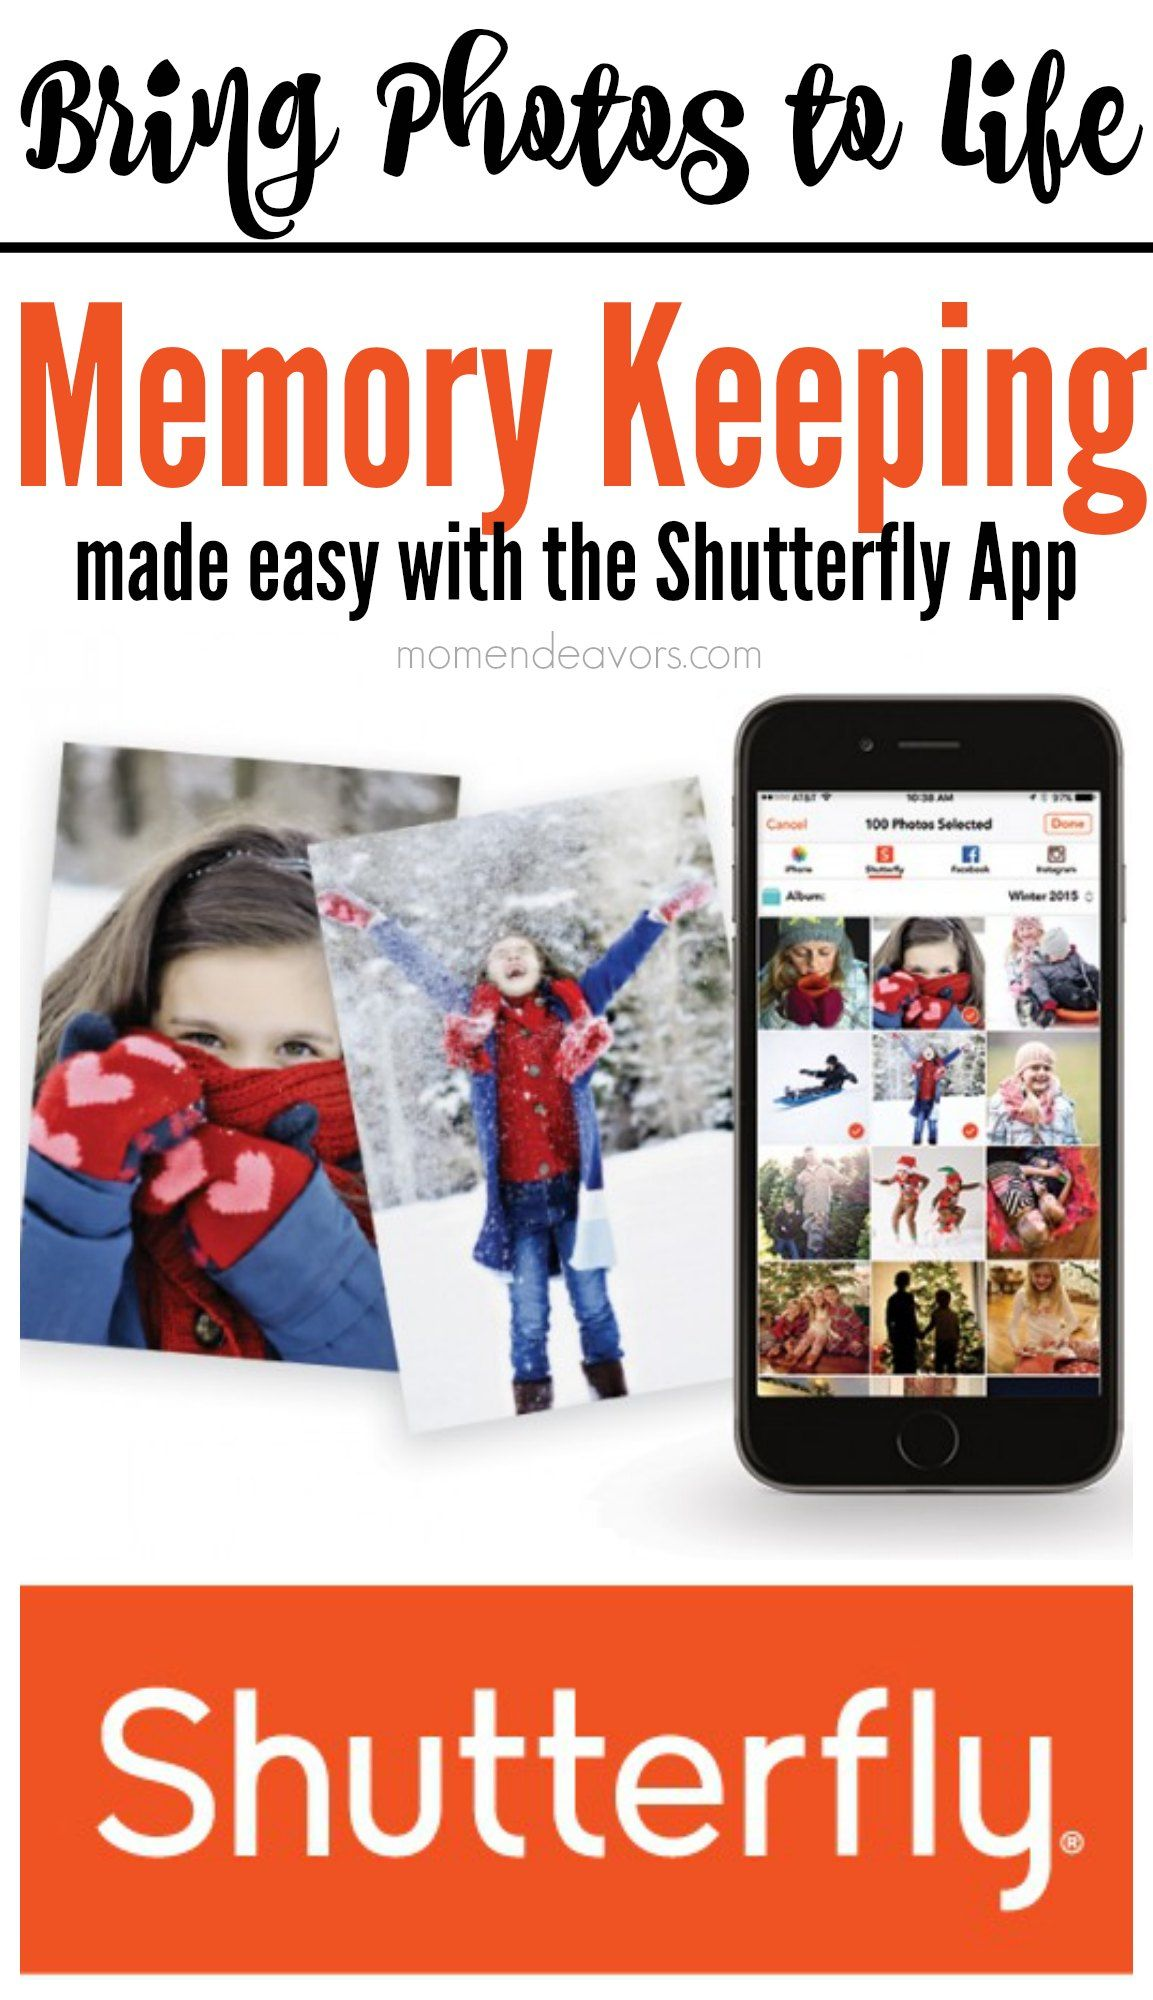 Memory Keeping made easy with the Shutterfly App! Plus get